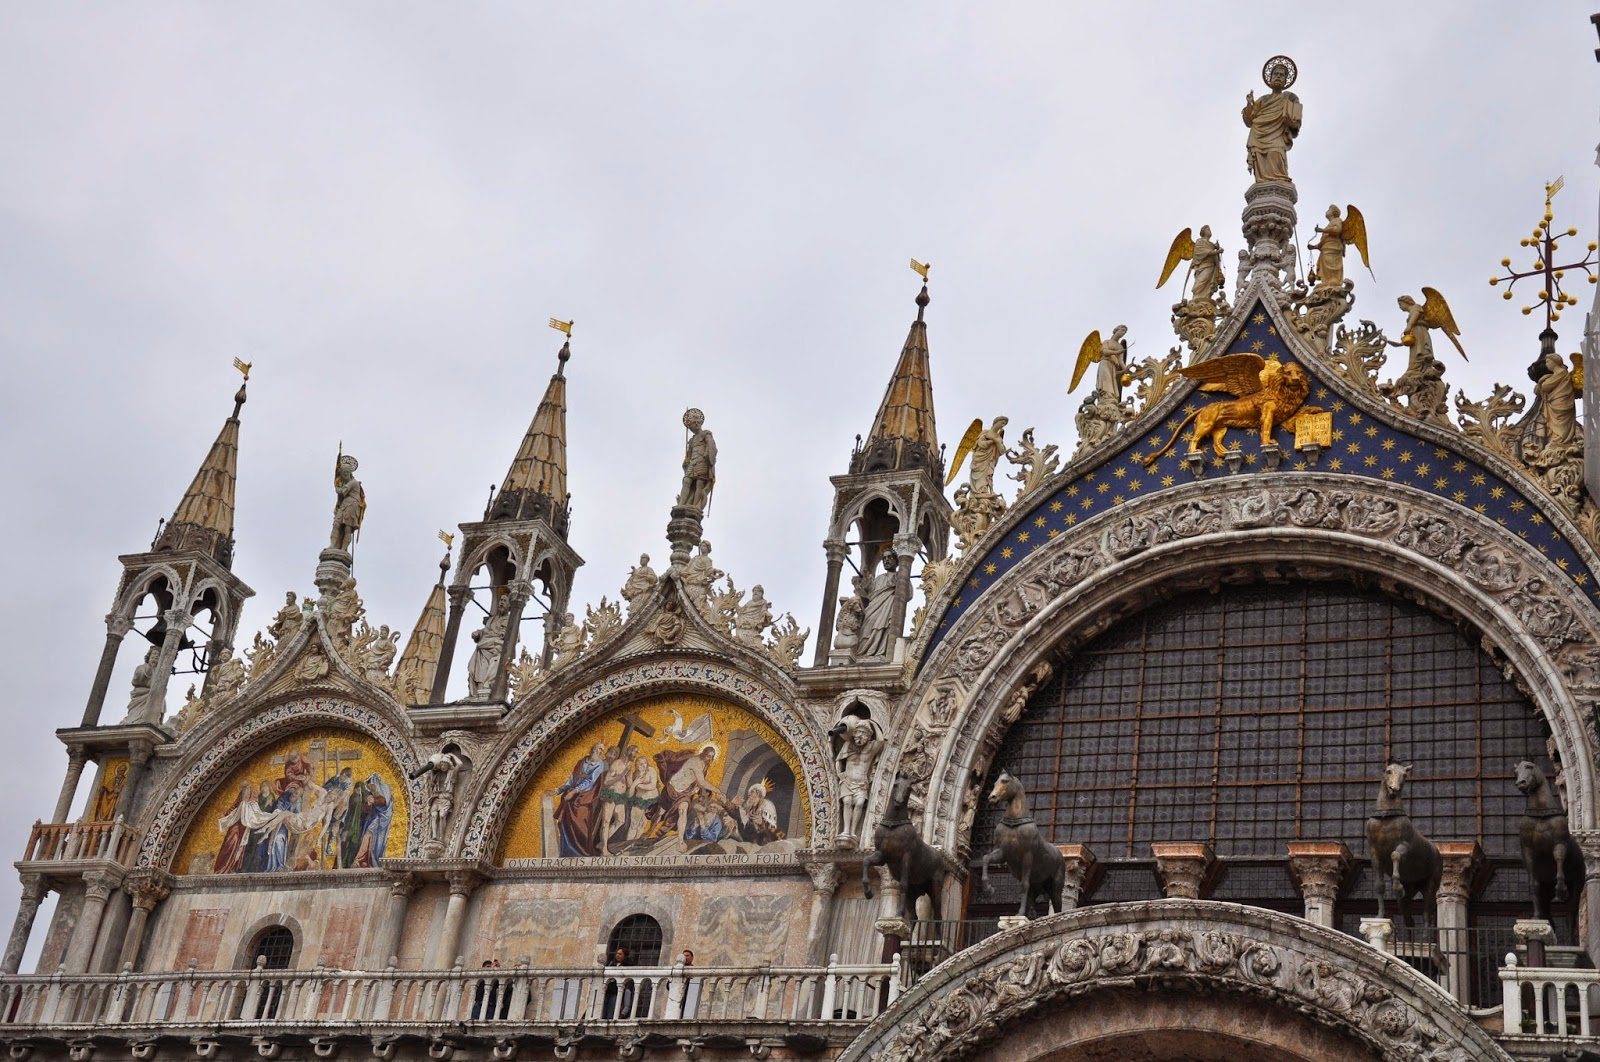 The facade of St. Mark's Basilica in Venice